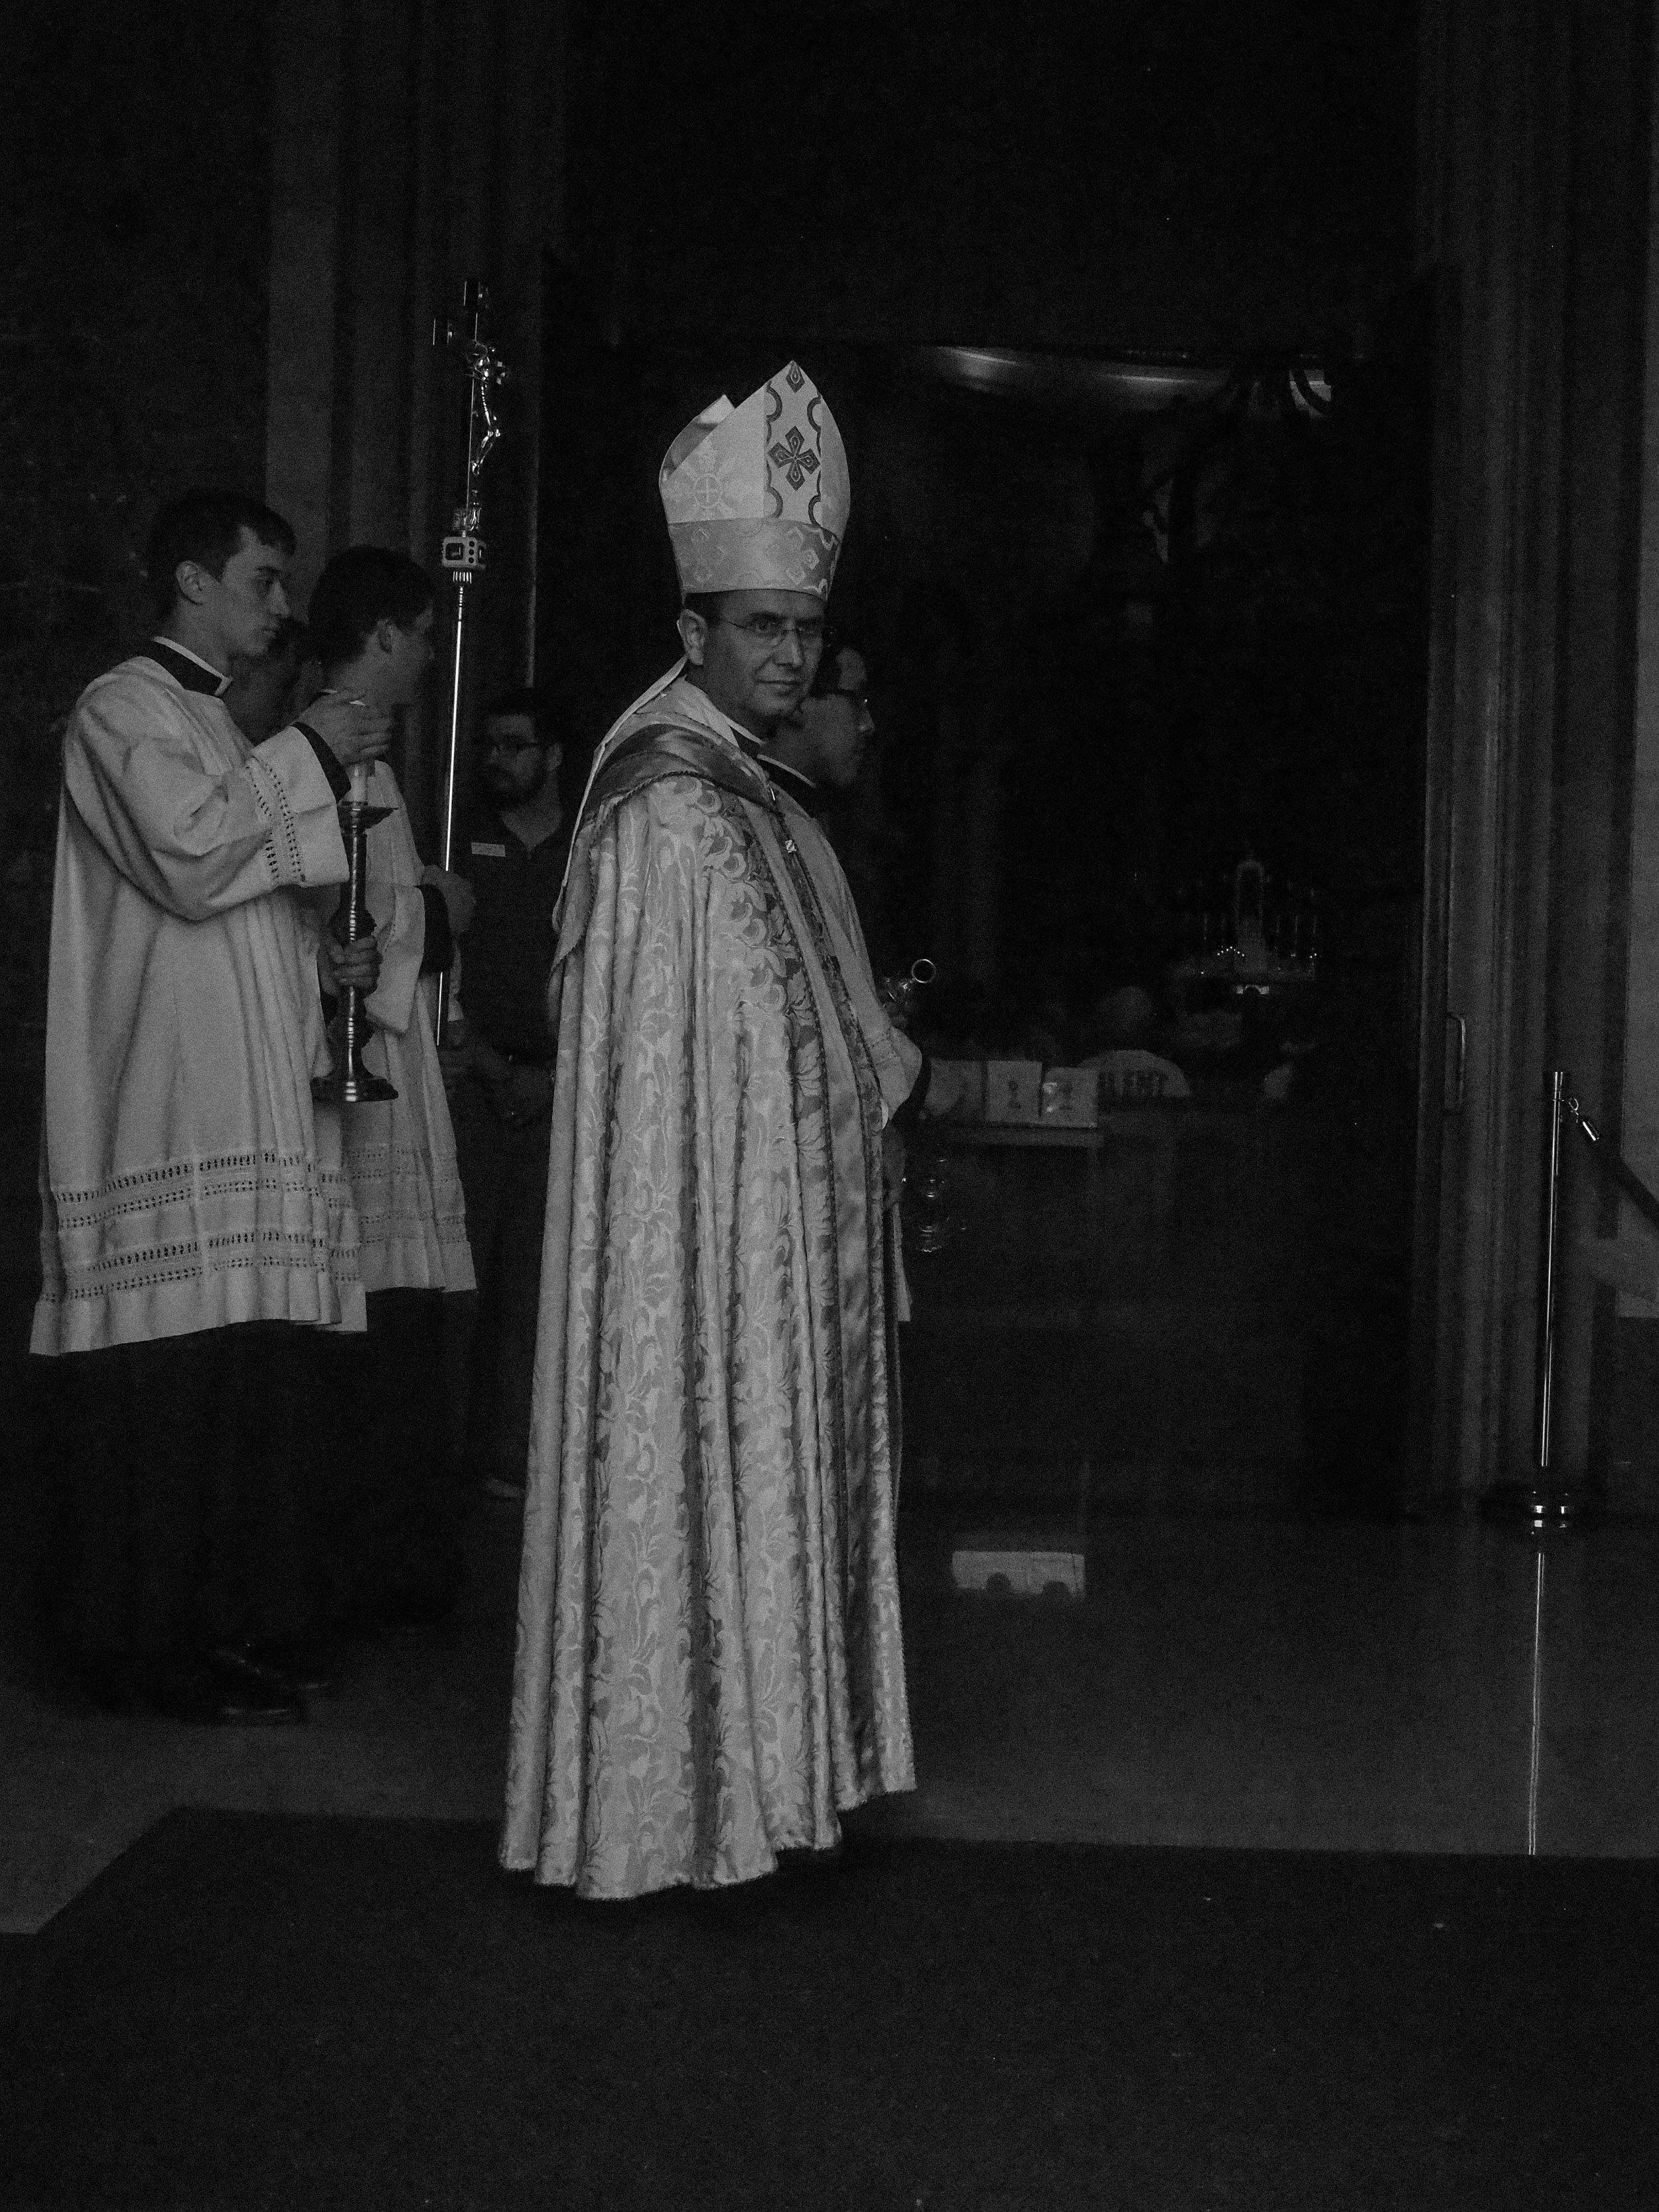 The Bishop.Rosary Procession. Saint Paul, MN.